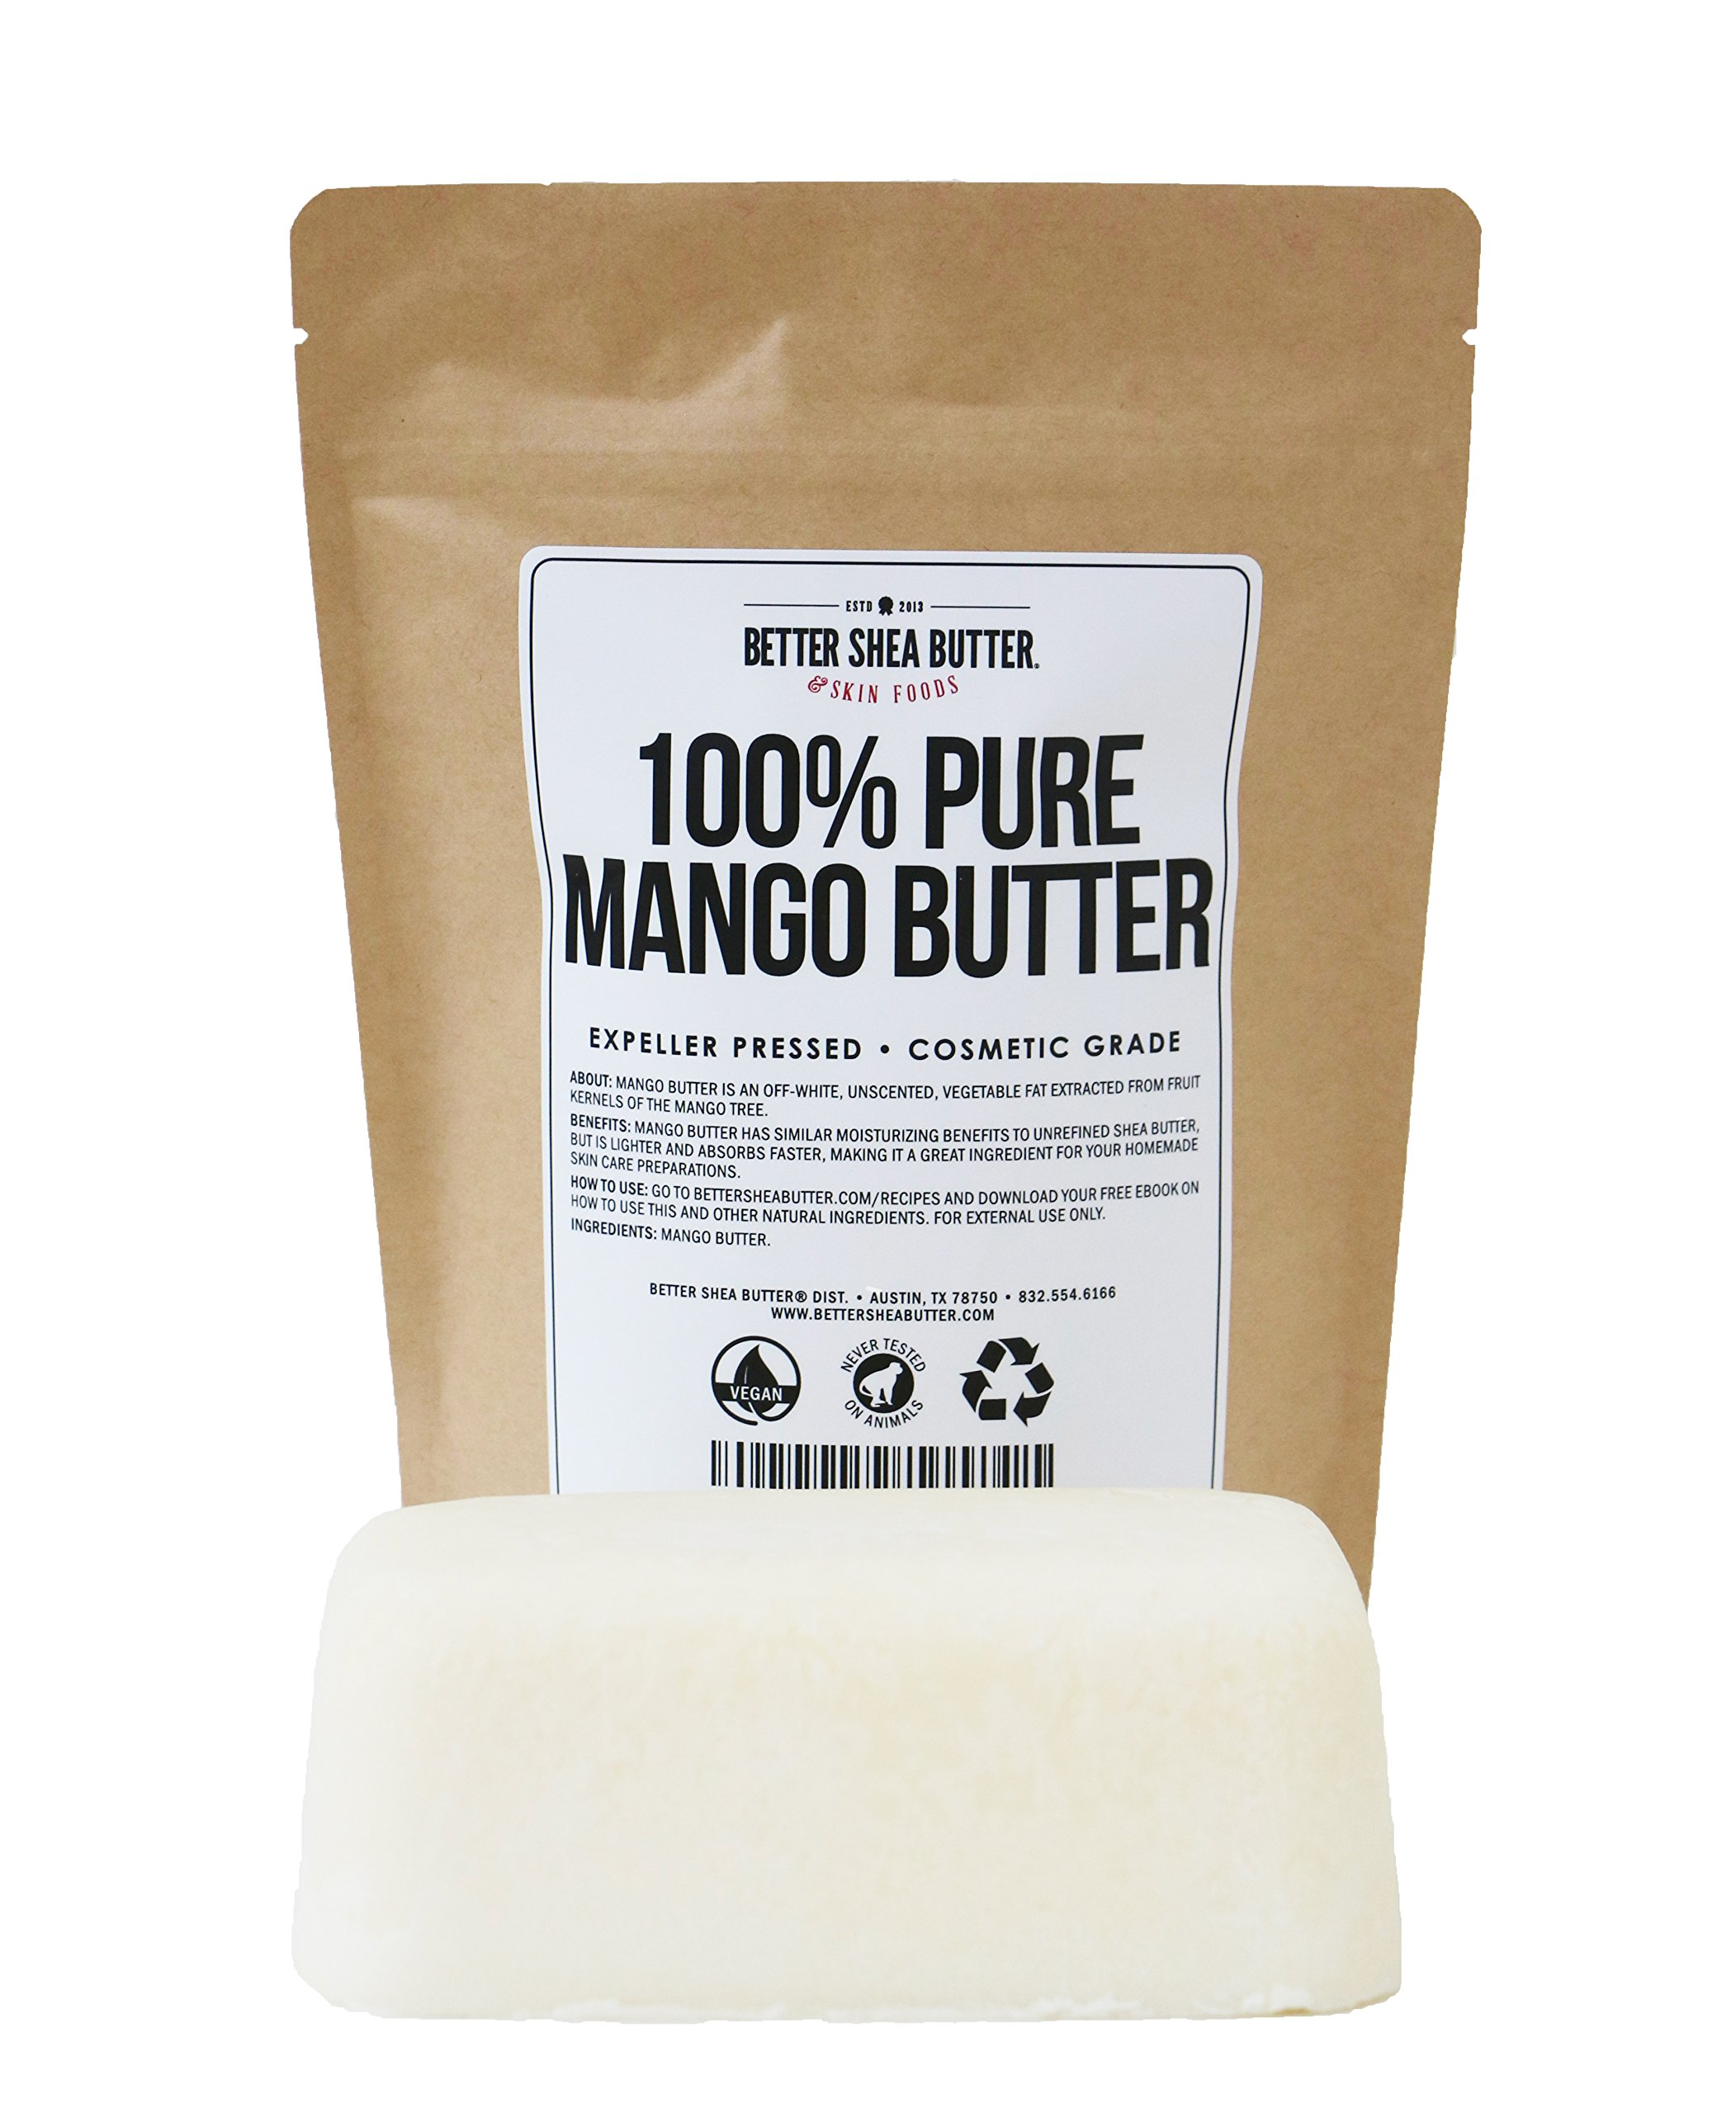 Mango Butter by Better Shea Butter - 1 lb